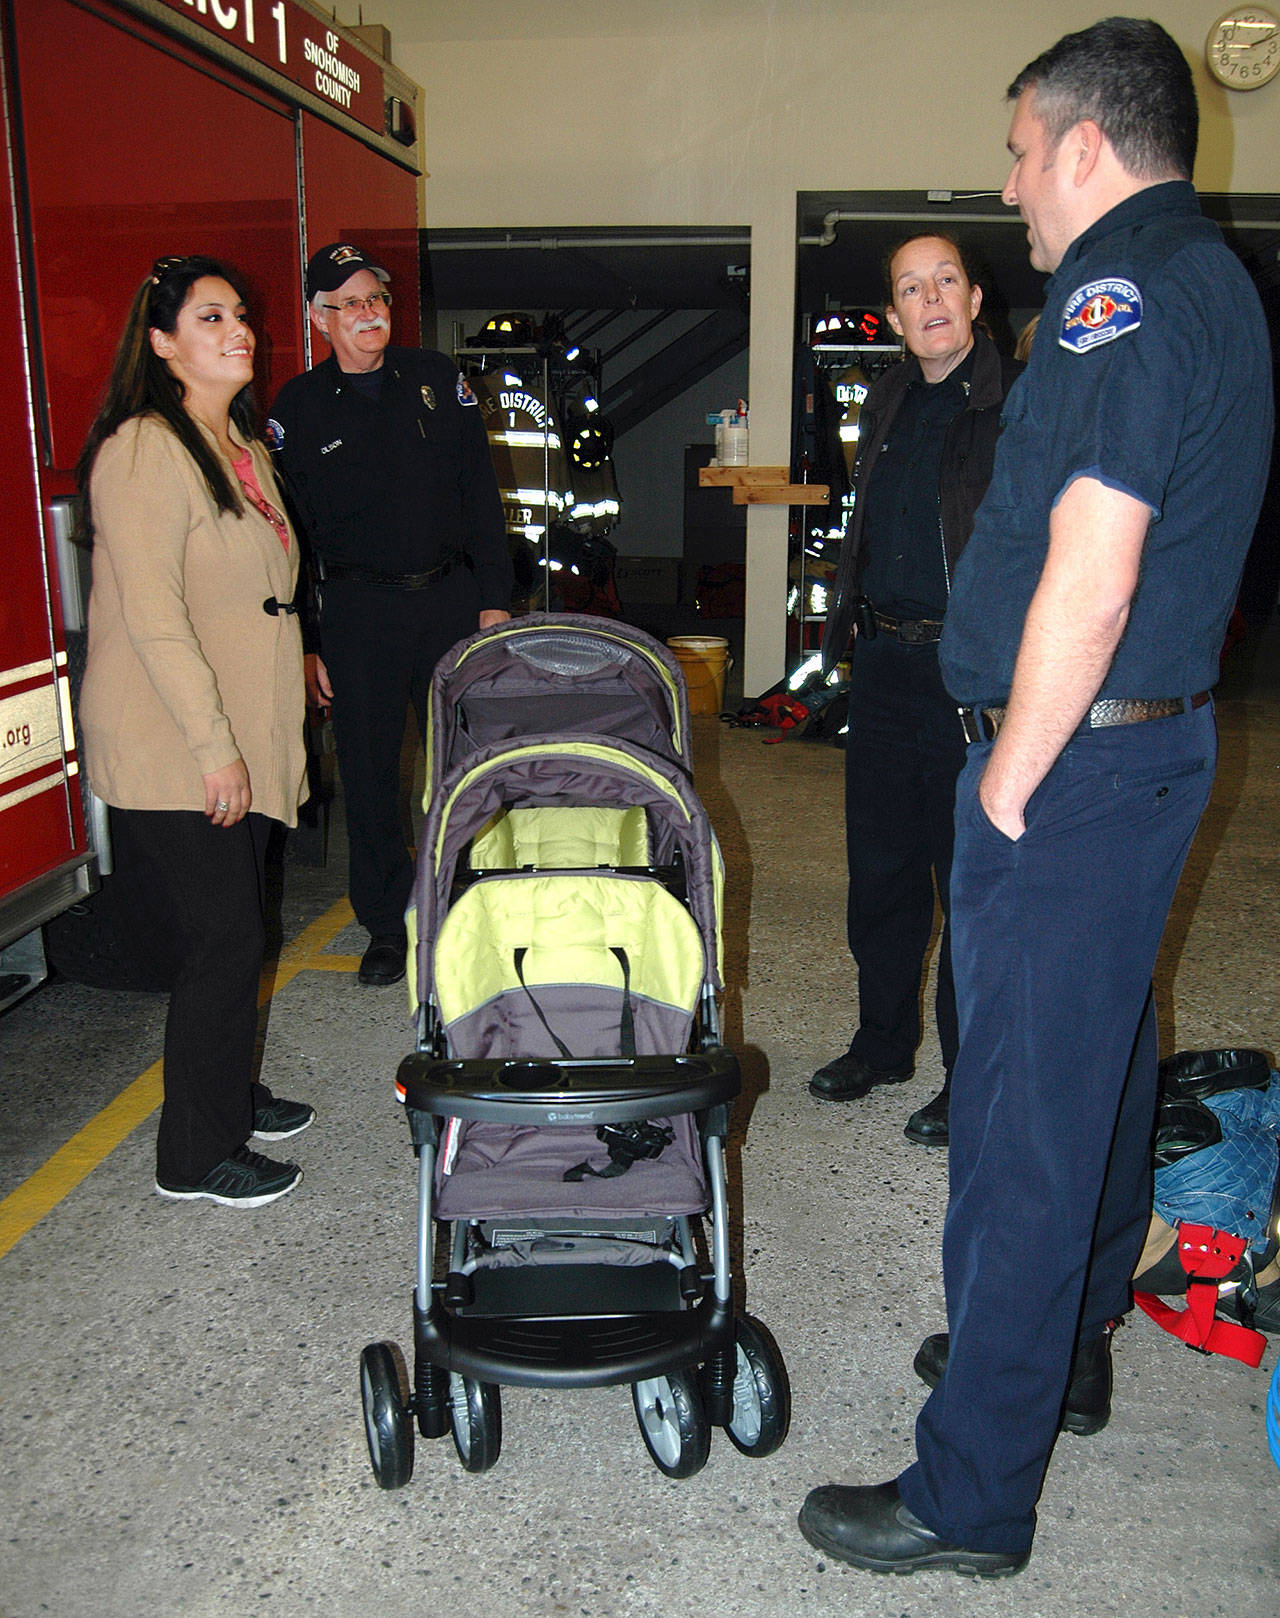 The crew of South Snohomish Fire and Rescue Medic 13 presents Johanna Castillo with a new stroller, days after her old one was destroyed in a crash near Mill Creek. (South Snohomish Fire and Rescue)